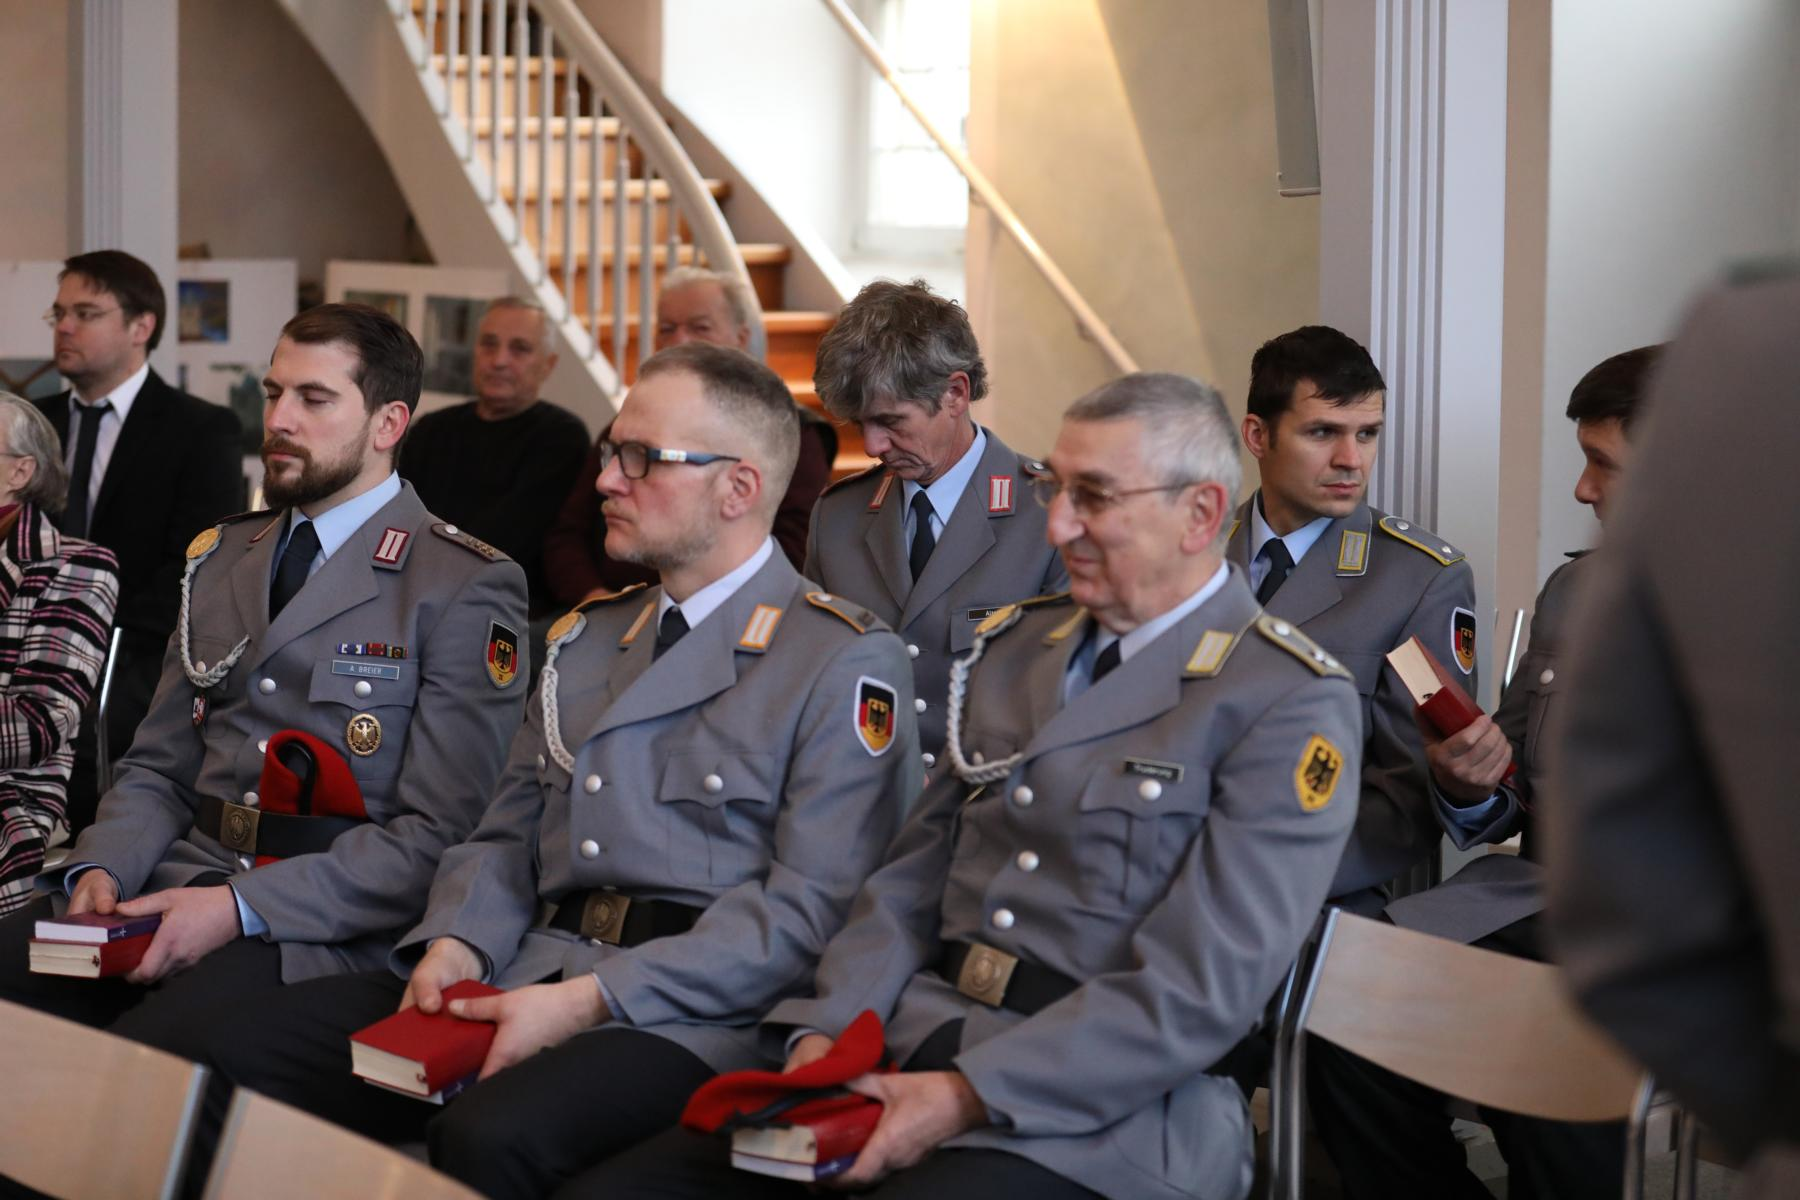 Ökumenischer Volkstrauertagsgottesdienst in der Matthäuskirche in KASSEL-NIEDERZWEHREN